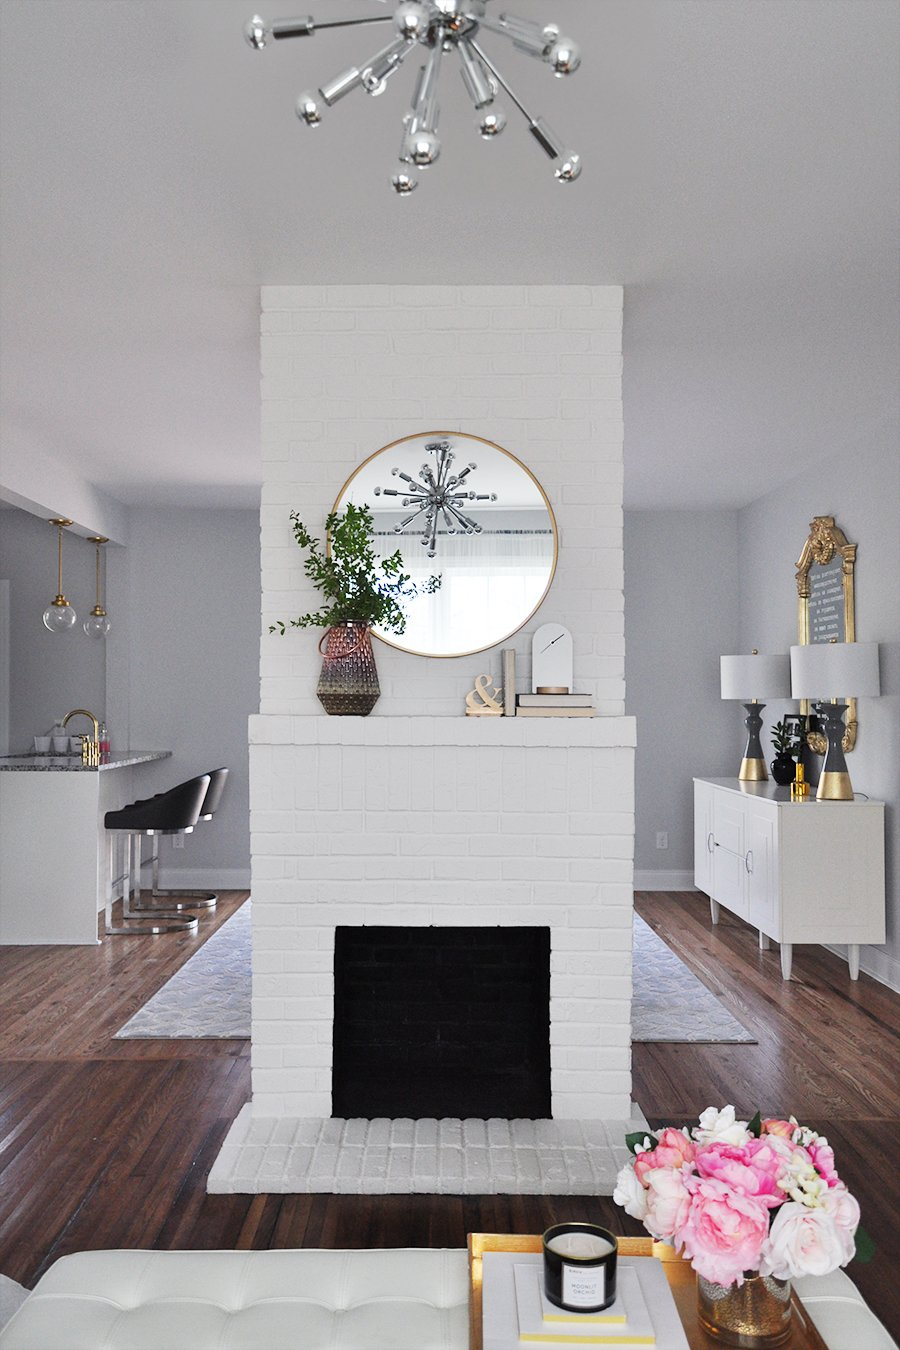 Fireplace Decor: 3 Simple Ways to Decorate Your Mantle for ...